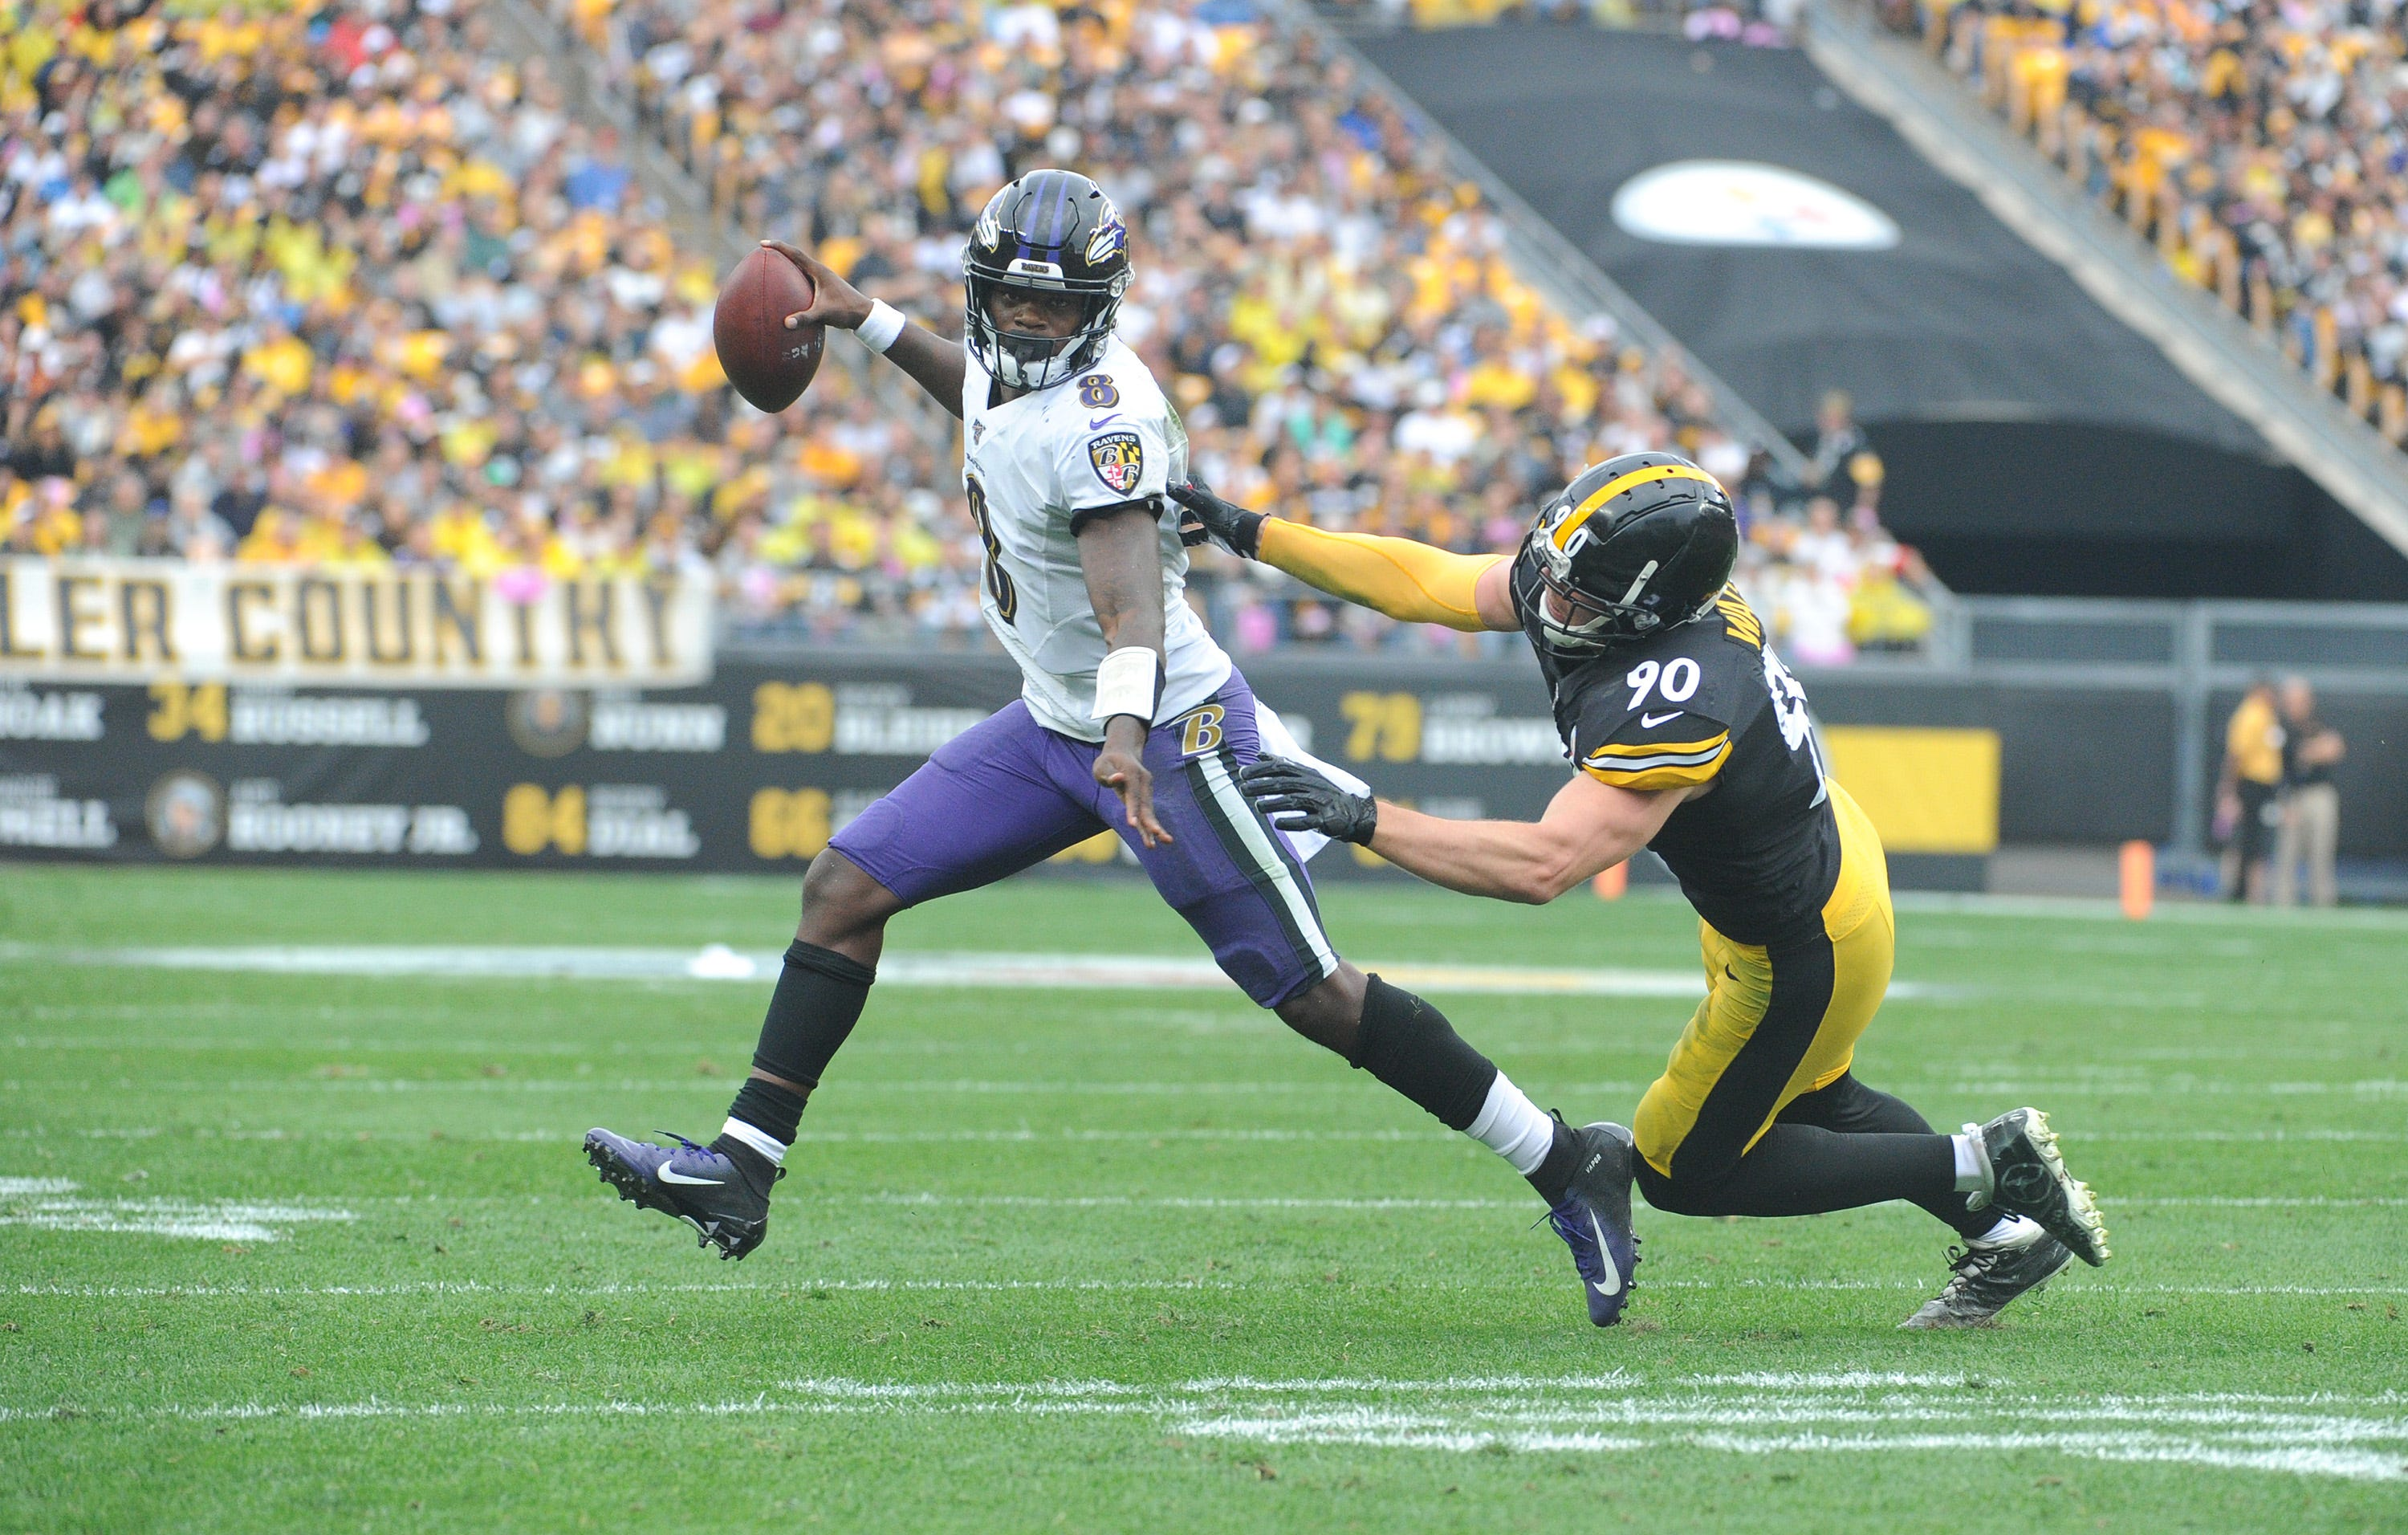 Steelers face Ravens in titanic AFC North battle. Plus, Week 8 picks and fantasy football advice.